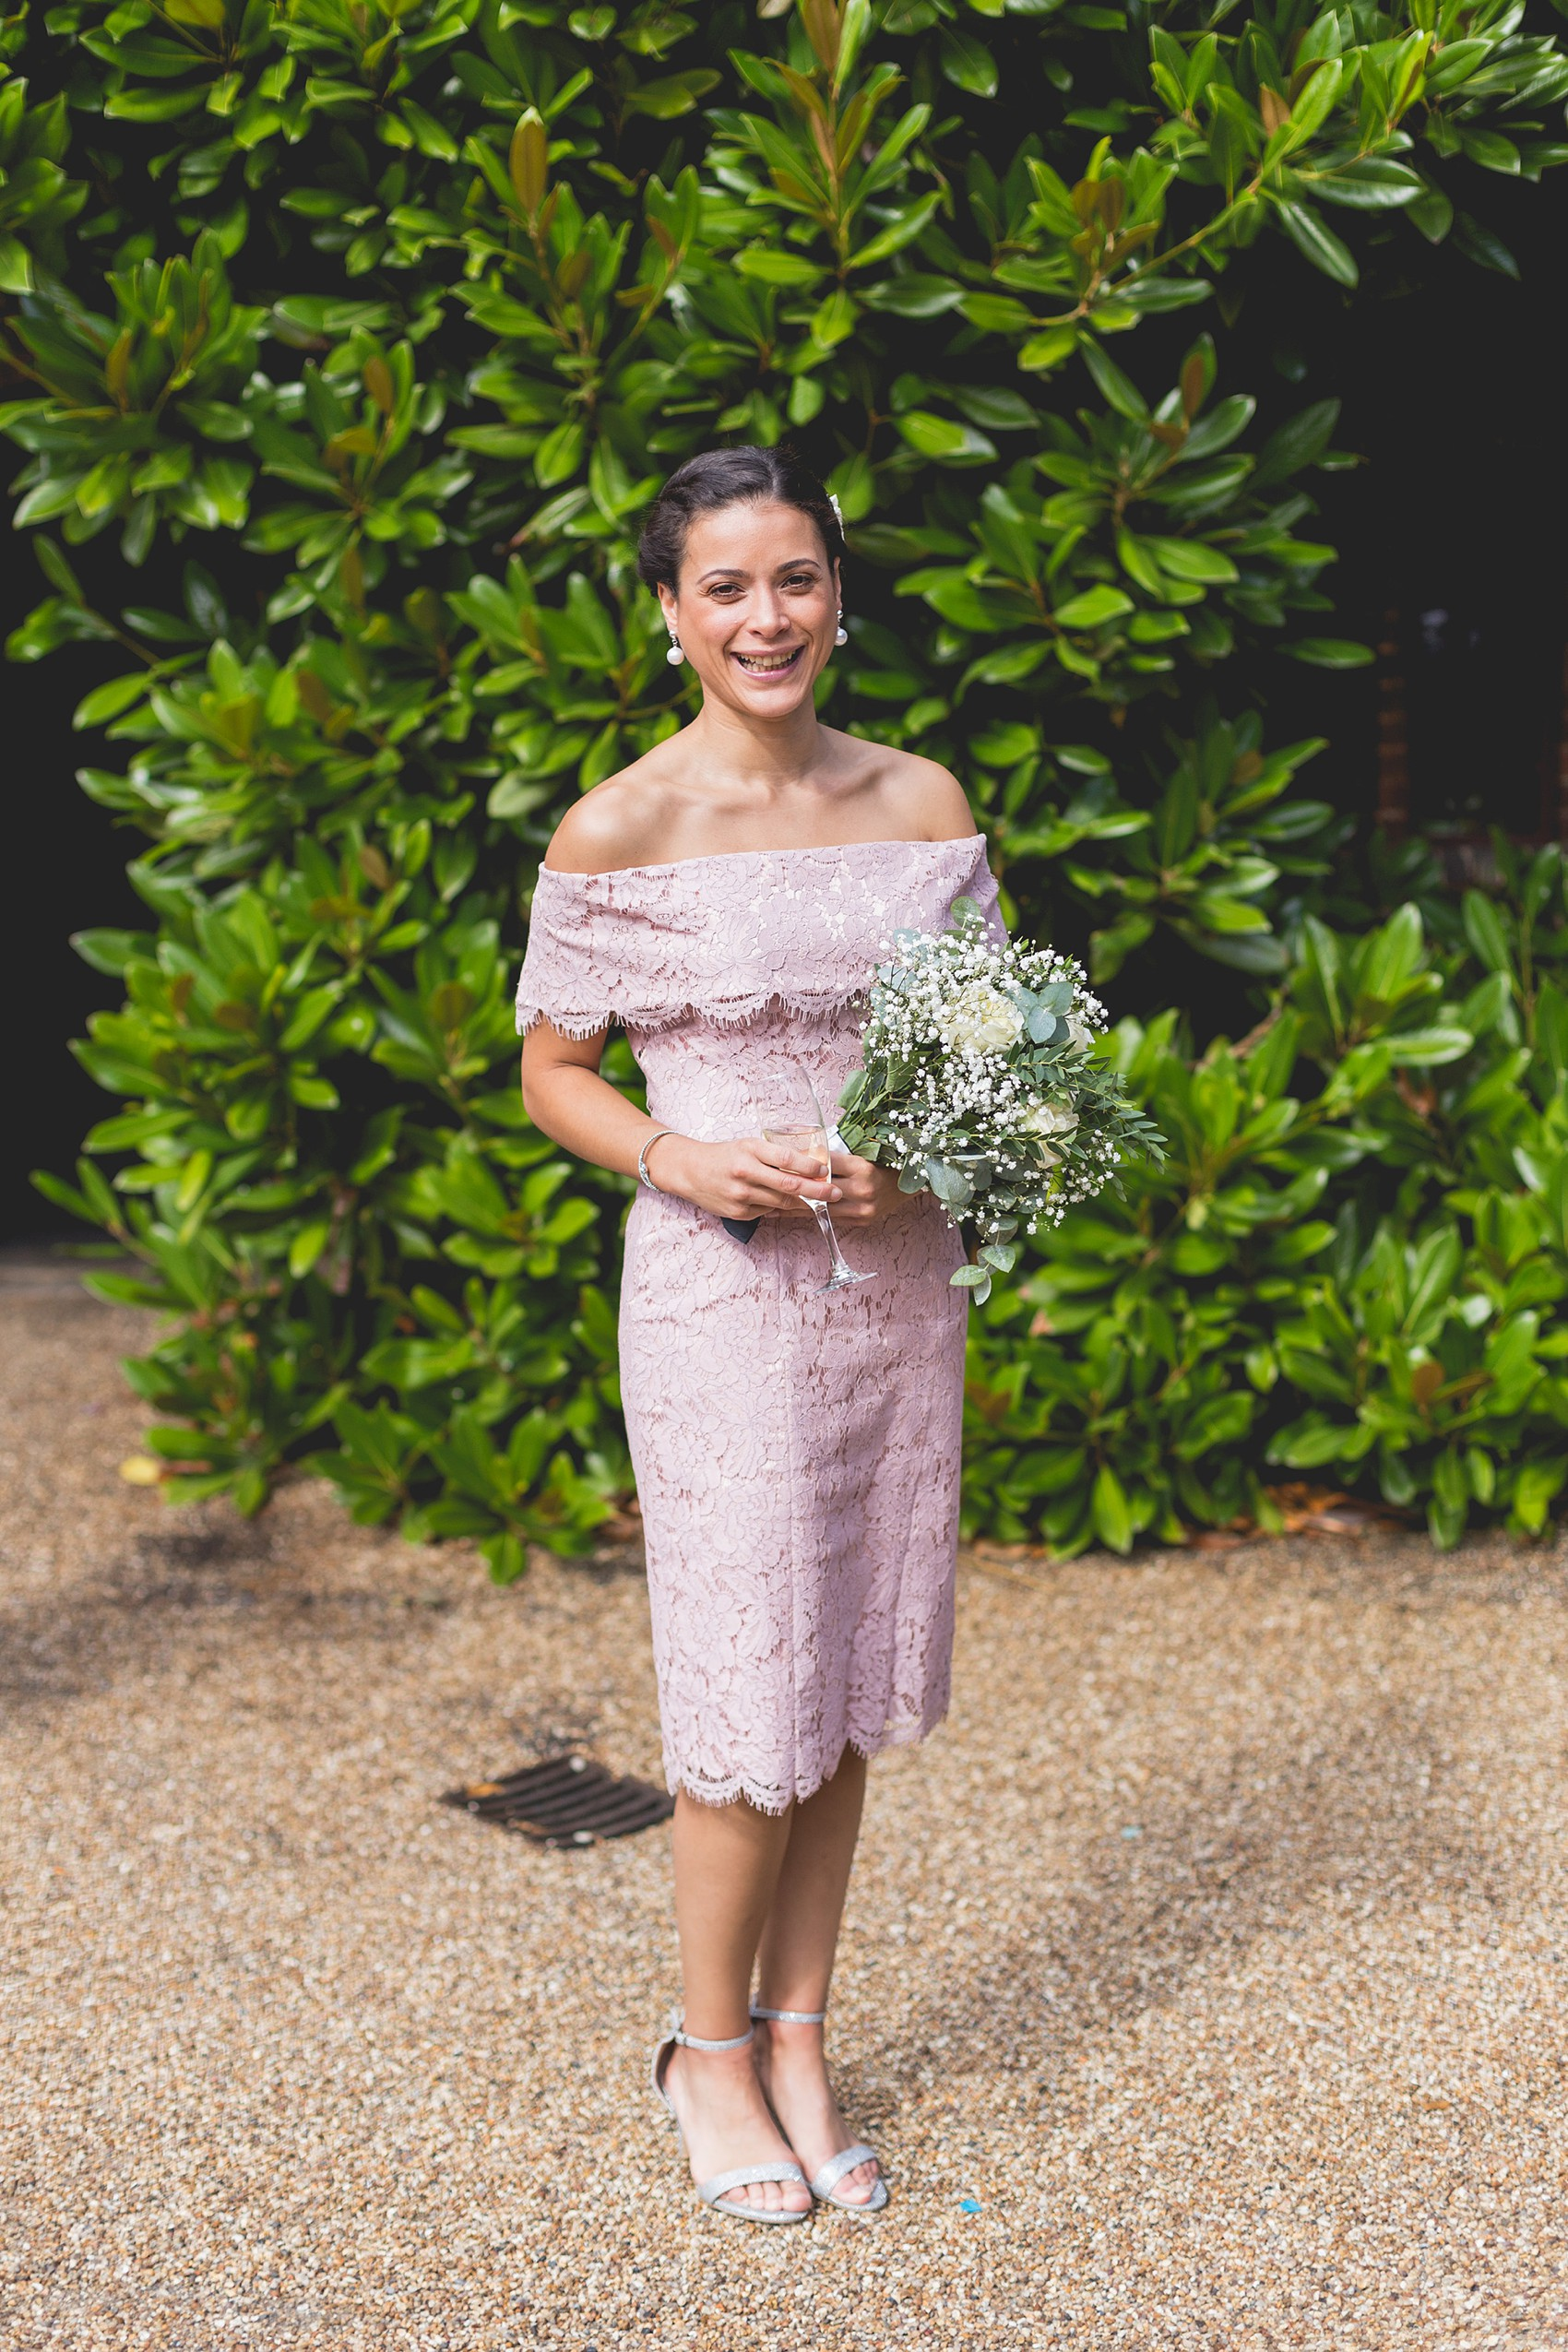 Temperley London bride - A Bride in Temperley London For A Classic Country House Summer Wedding